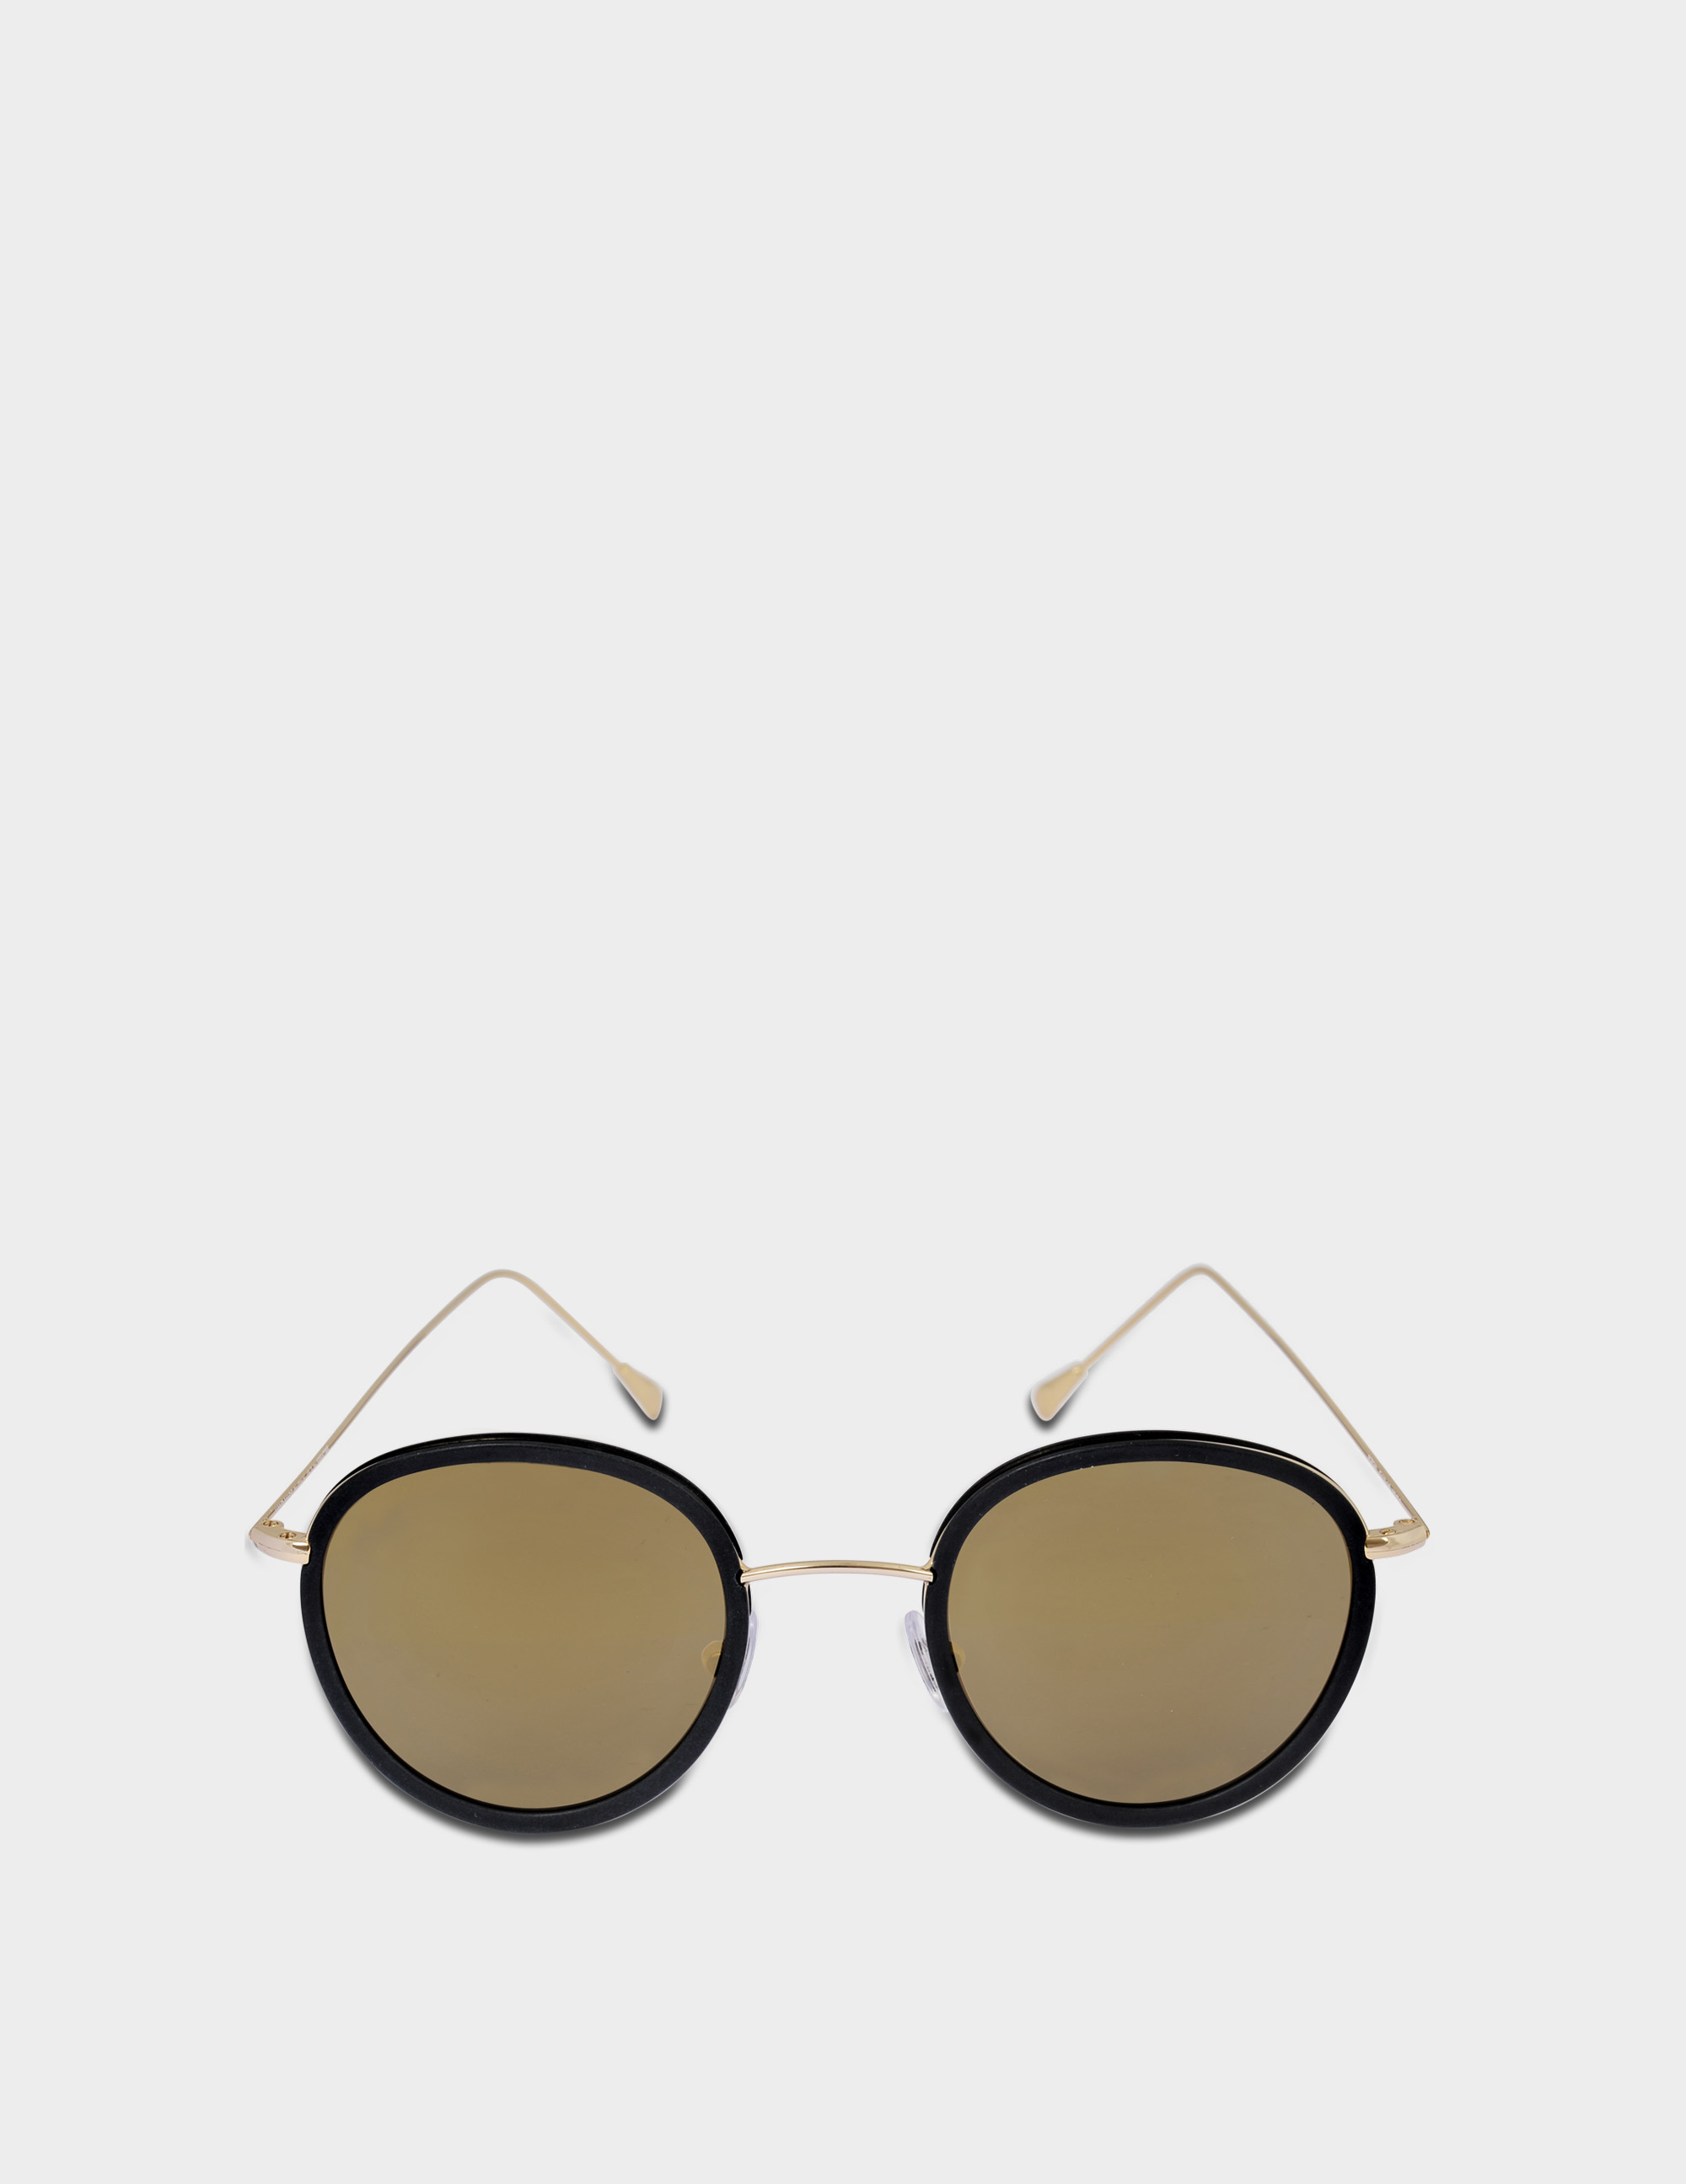 SPEKTRE MORGAN SUNGLASSES IN BLACK AND GOLD STAINLESS STEEL AND ACETATE